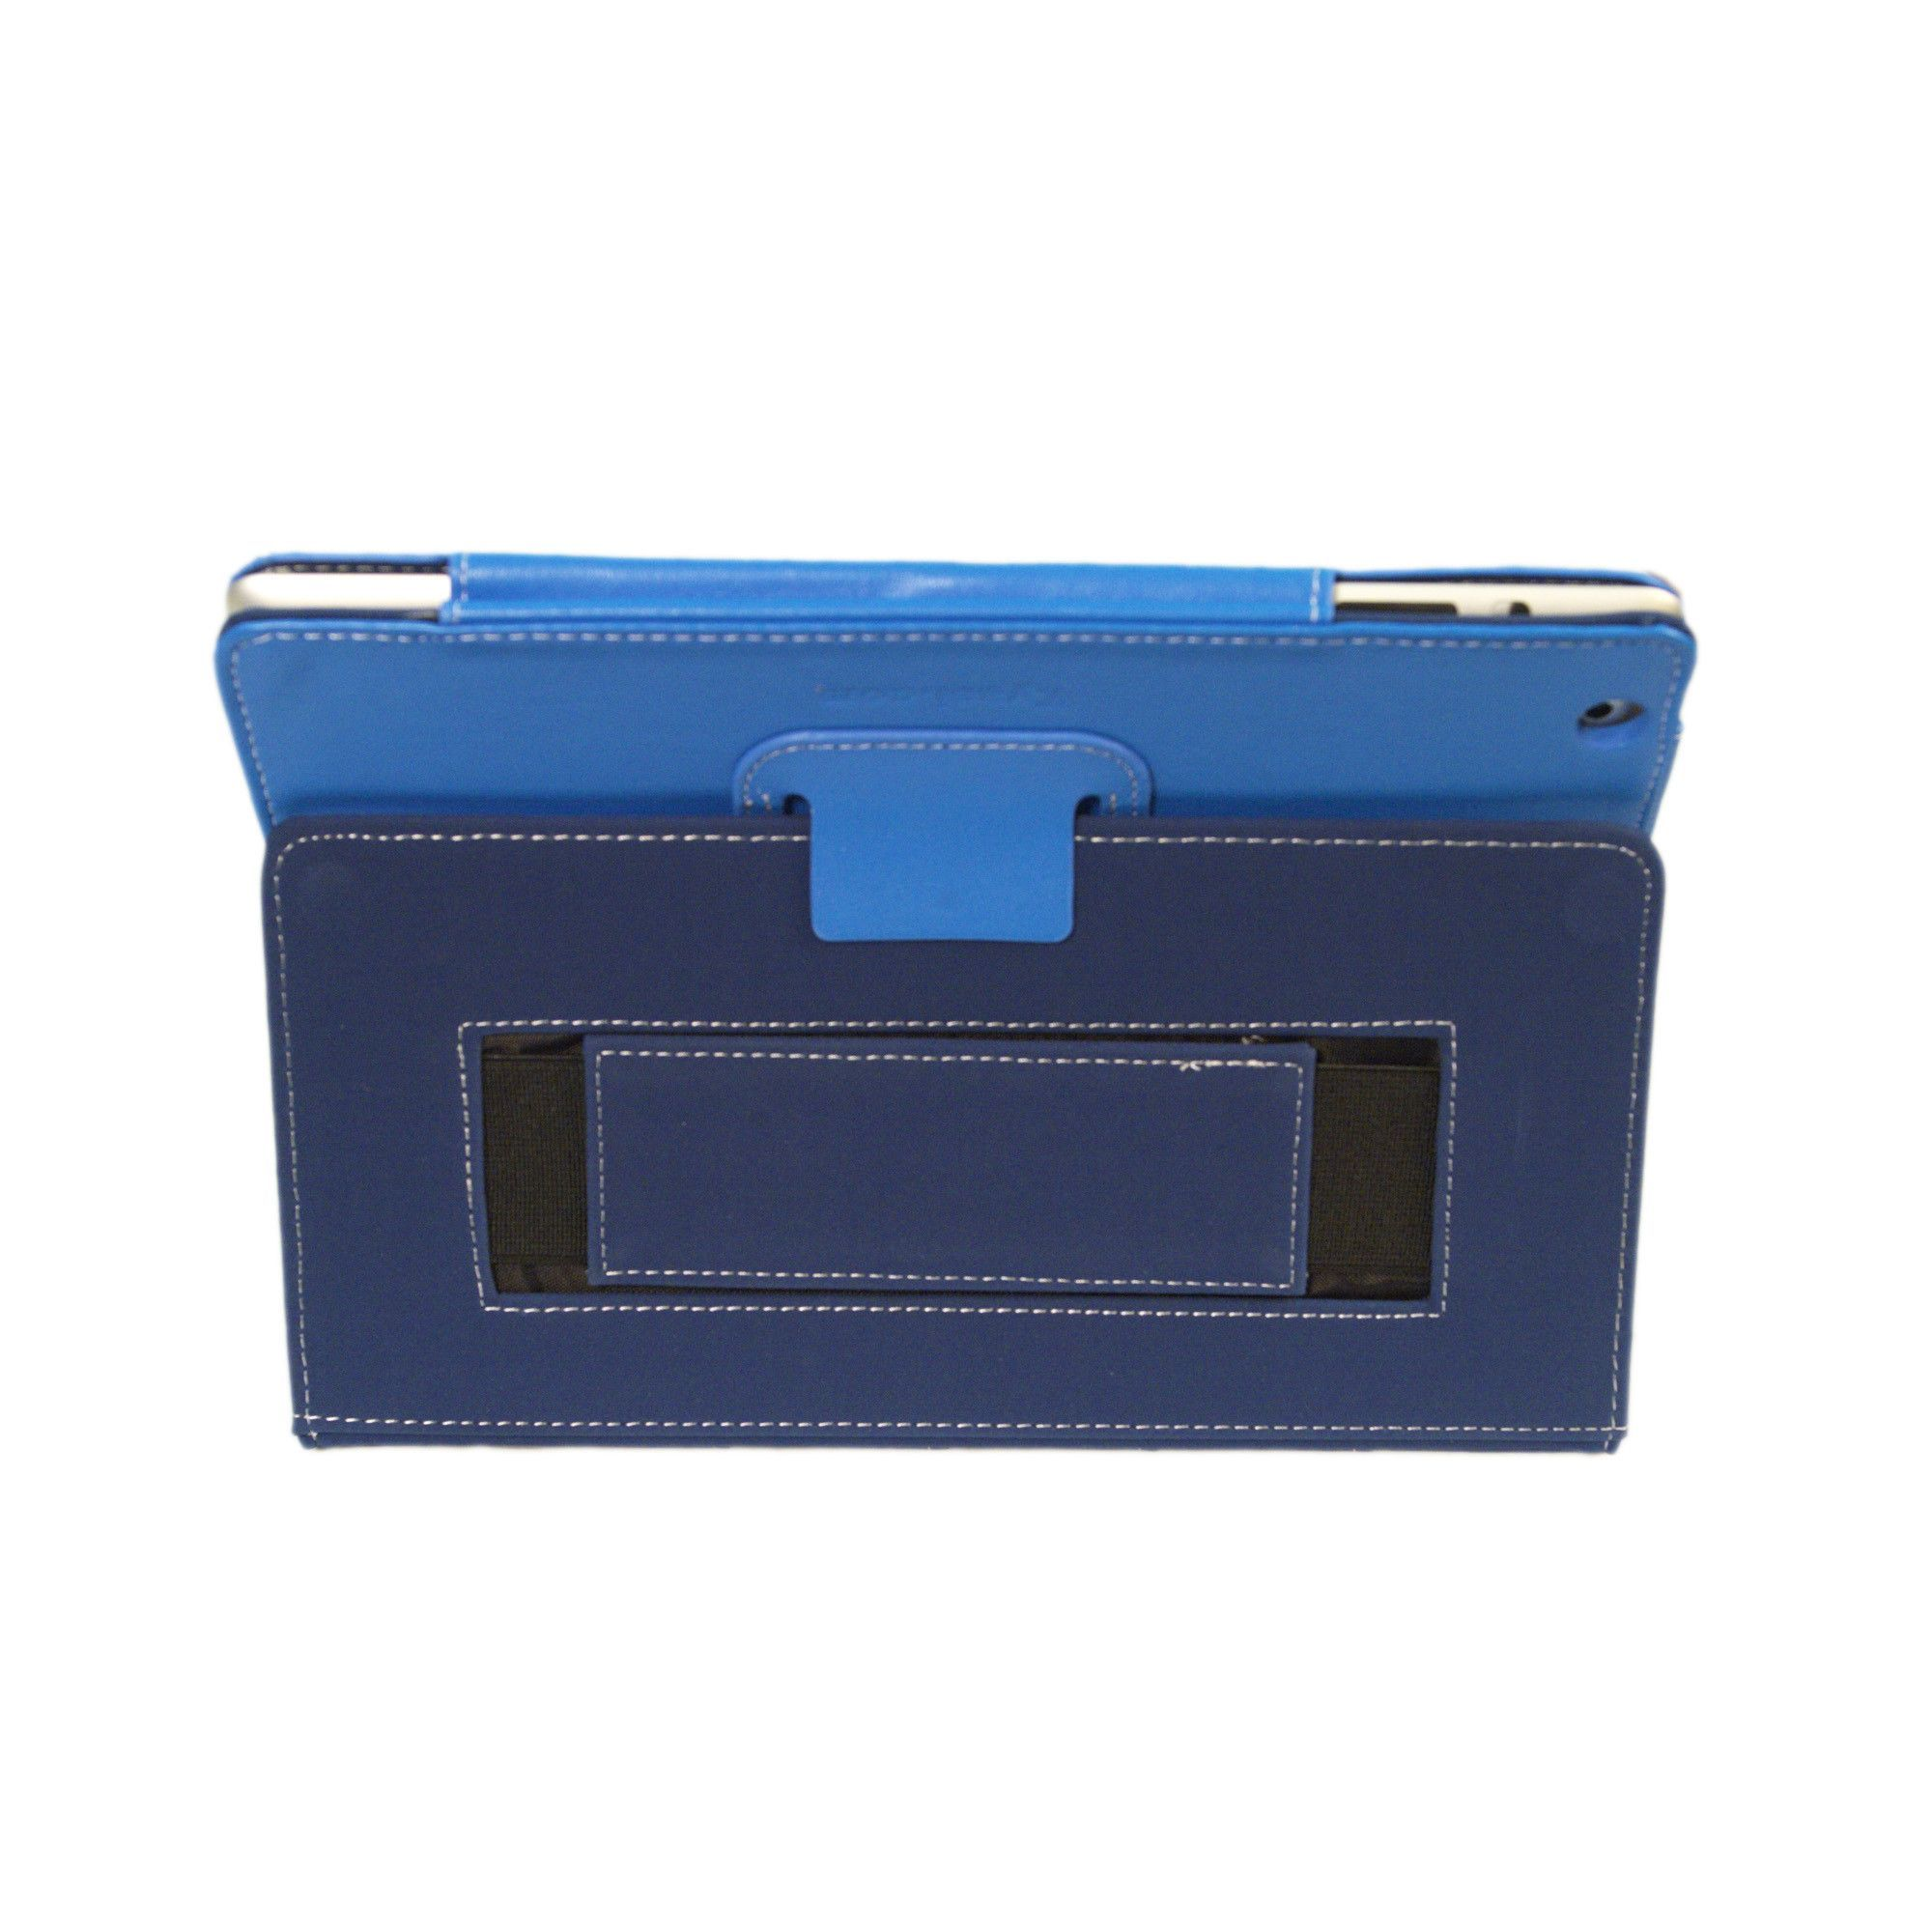 Kyasi London All Business iPad Case for iPad 2,3 or 4 October Blue